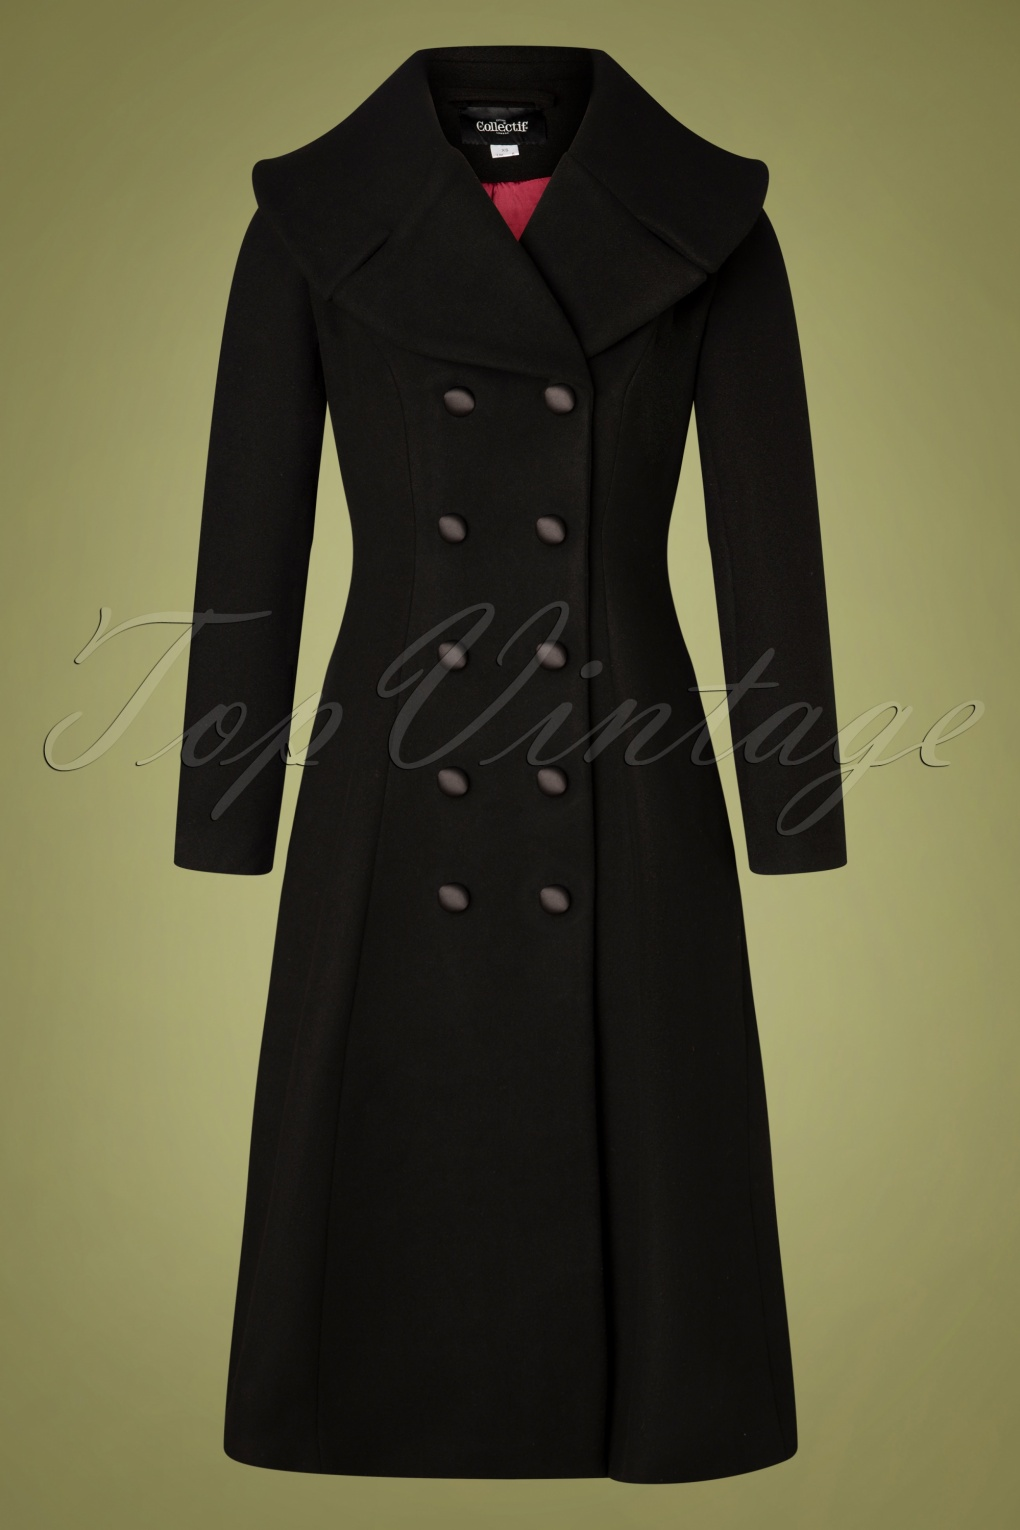 1950s Jackets, Coats, Bolero | Swing, Pin Up, Rockabilly 50s Eileean Coat in Black £160.18 AT vintagedancer.com